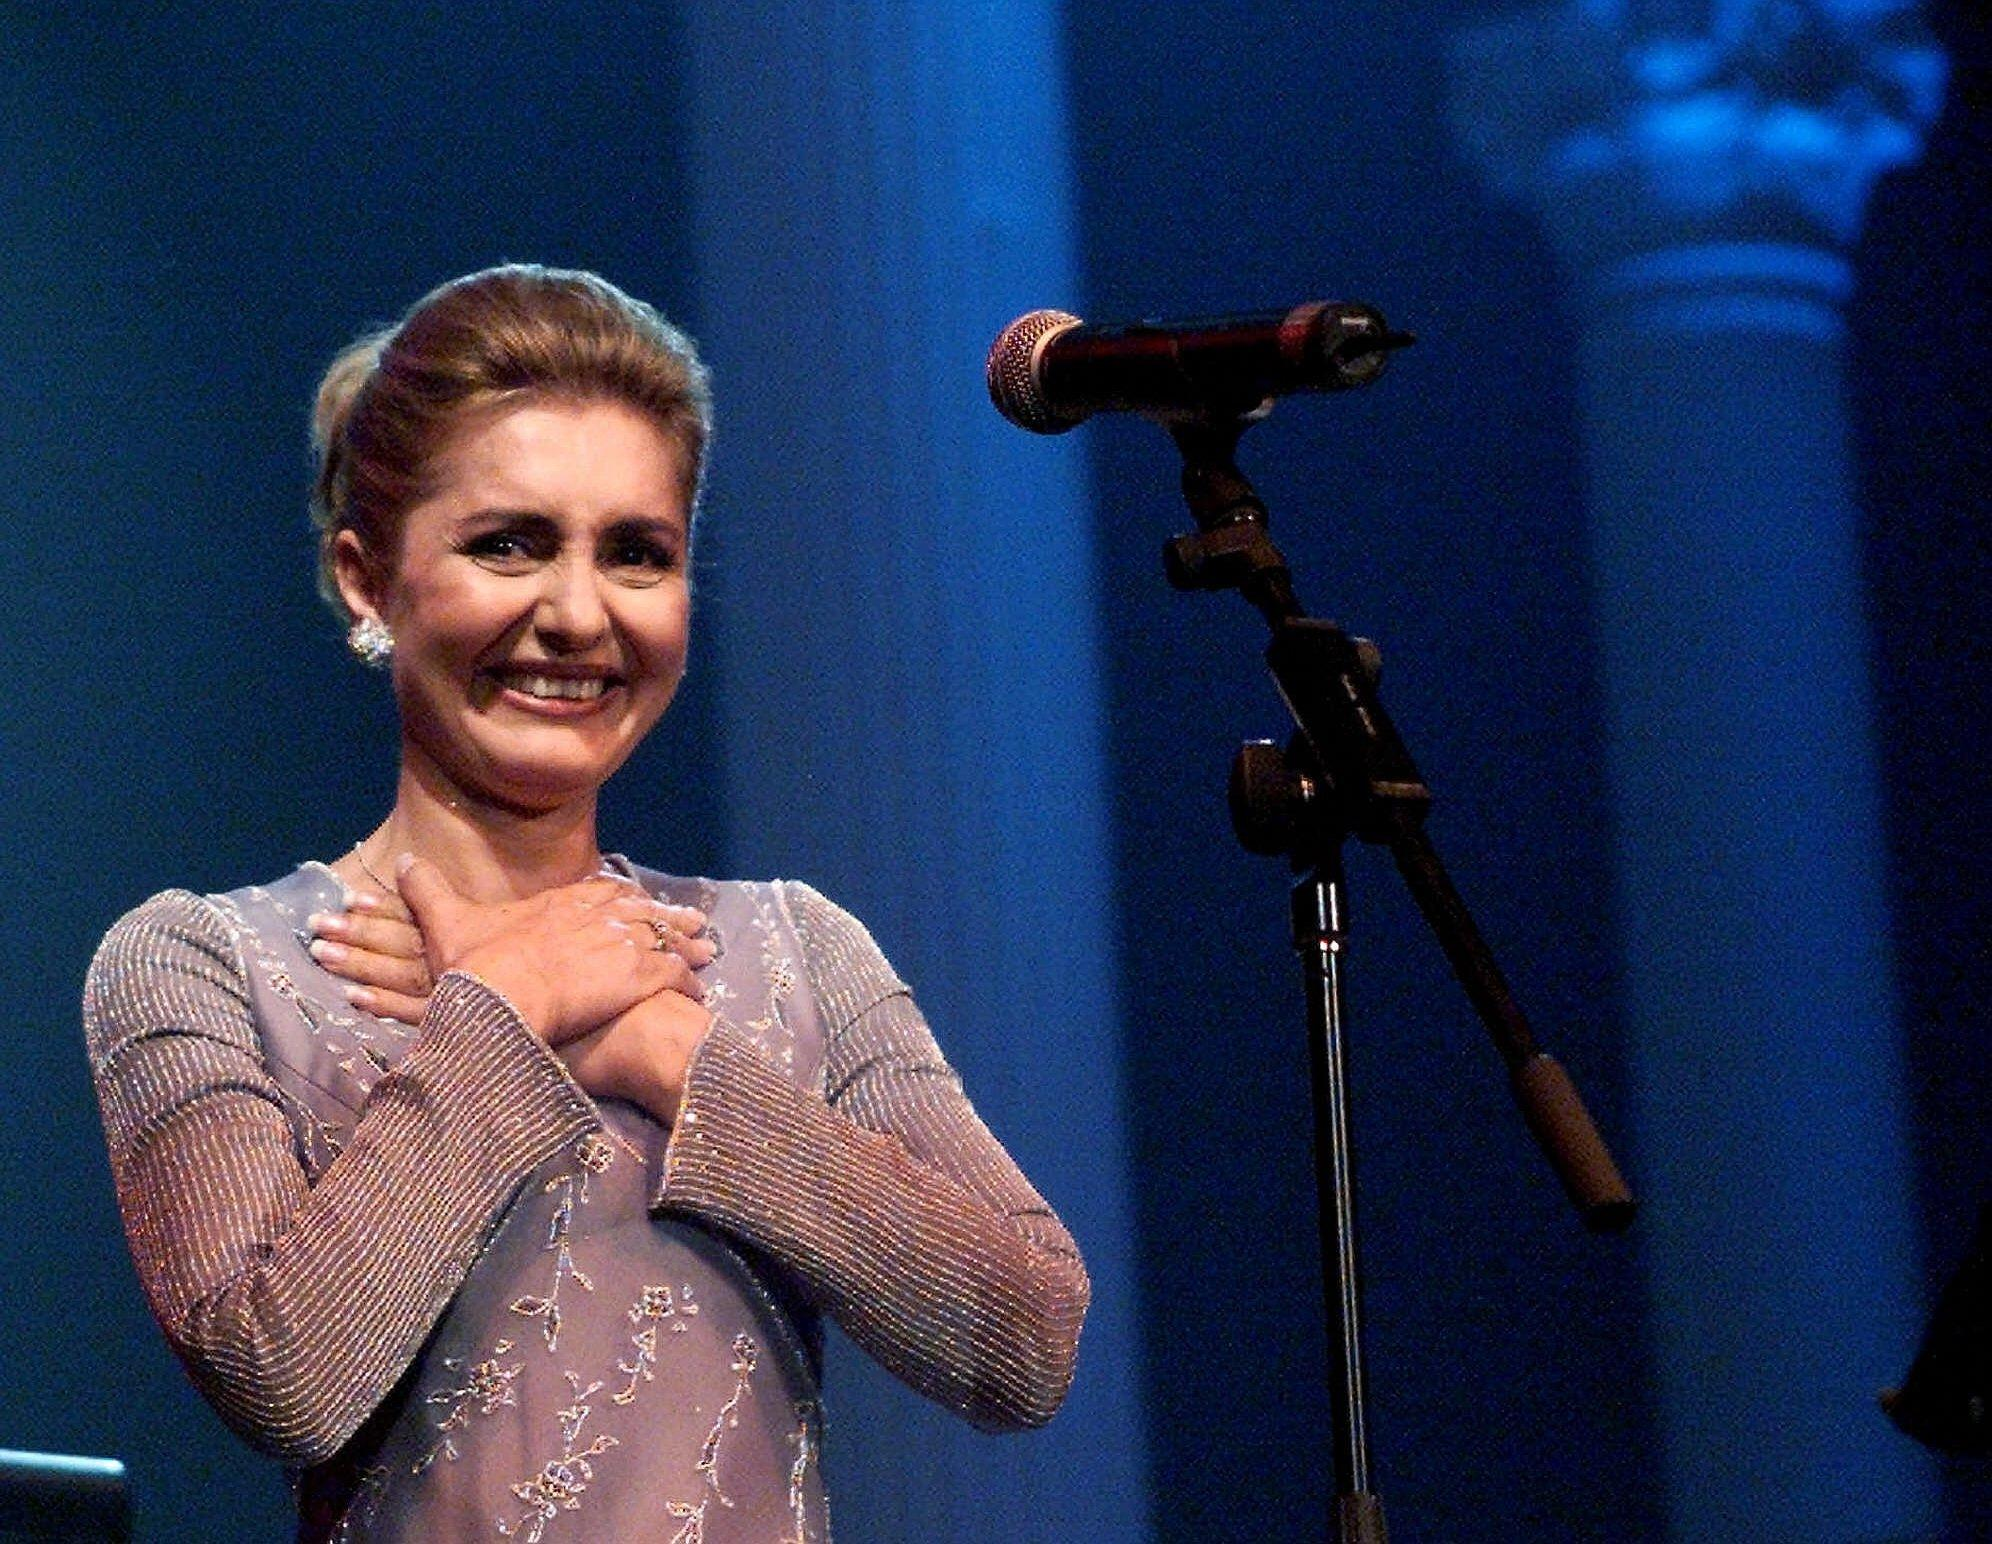 Iranian singer Googoosh weeps as she stands on stage during a concert in Toronto in 2000. It was her first concert since Iran's 1979 Islamic Revolution halted her career.